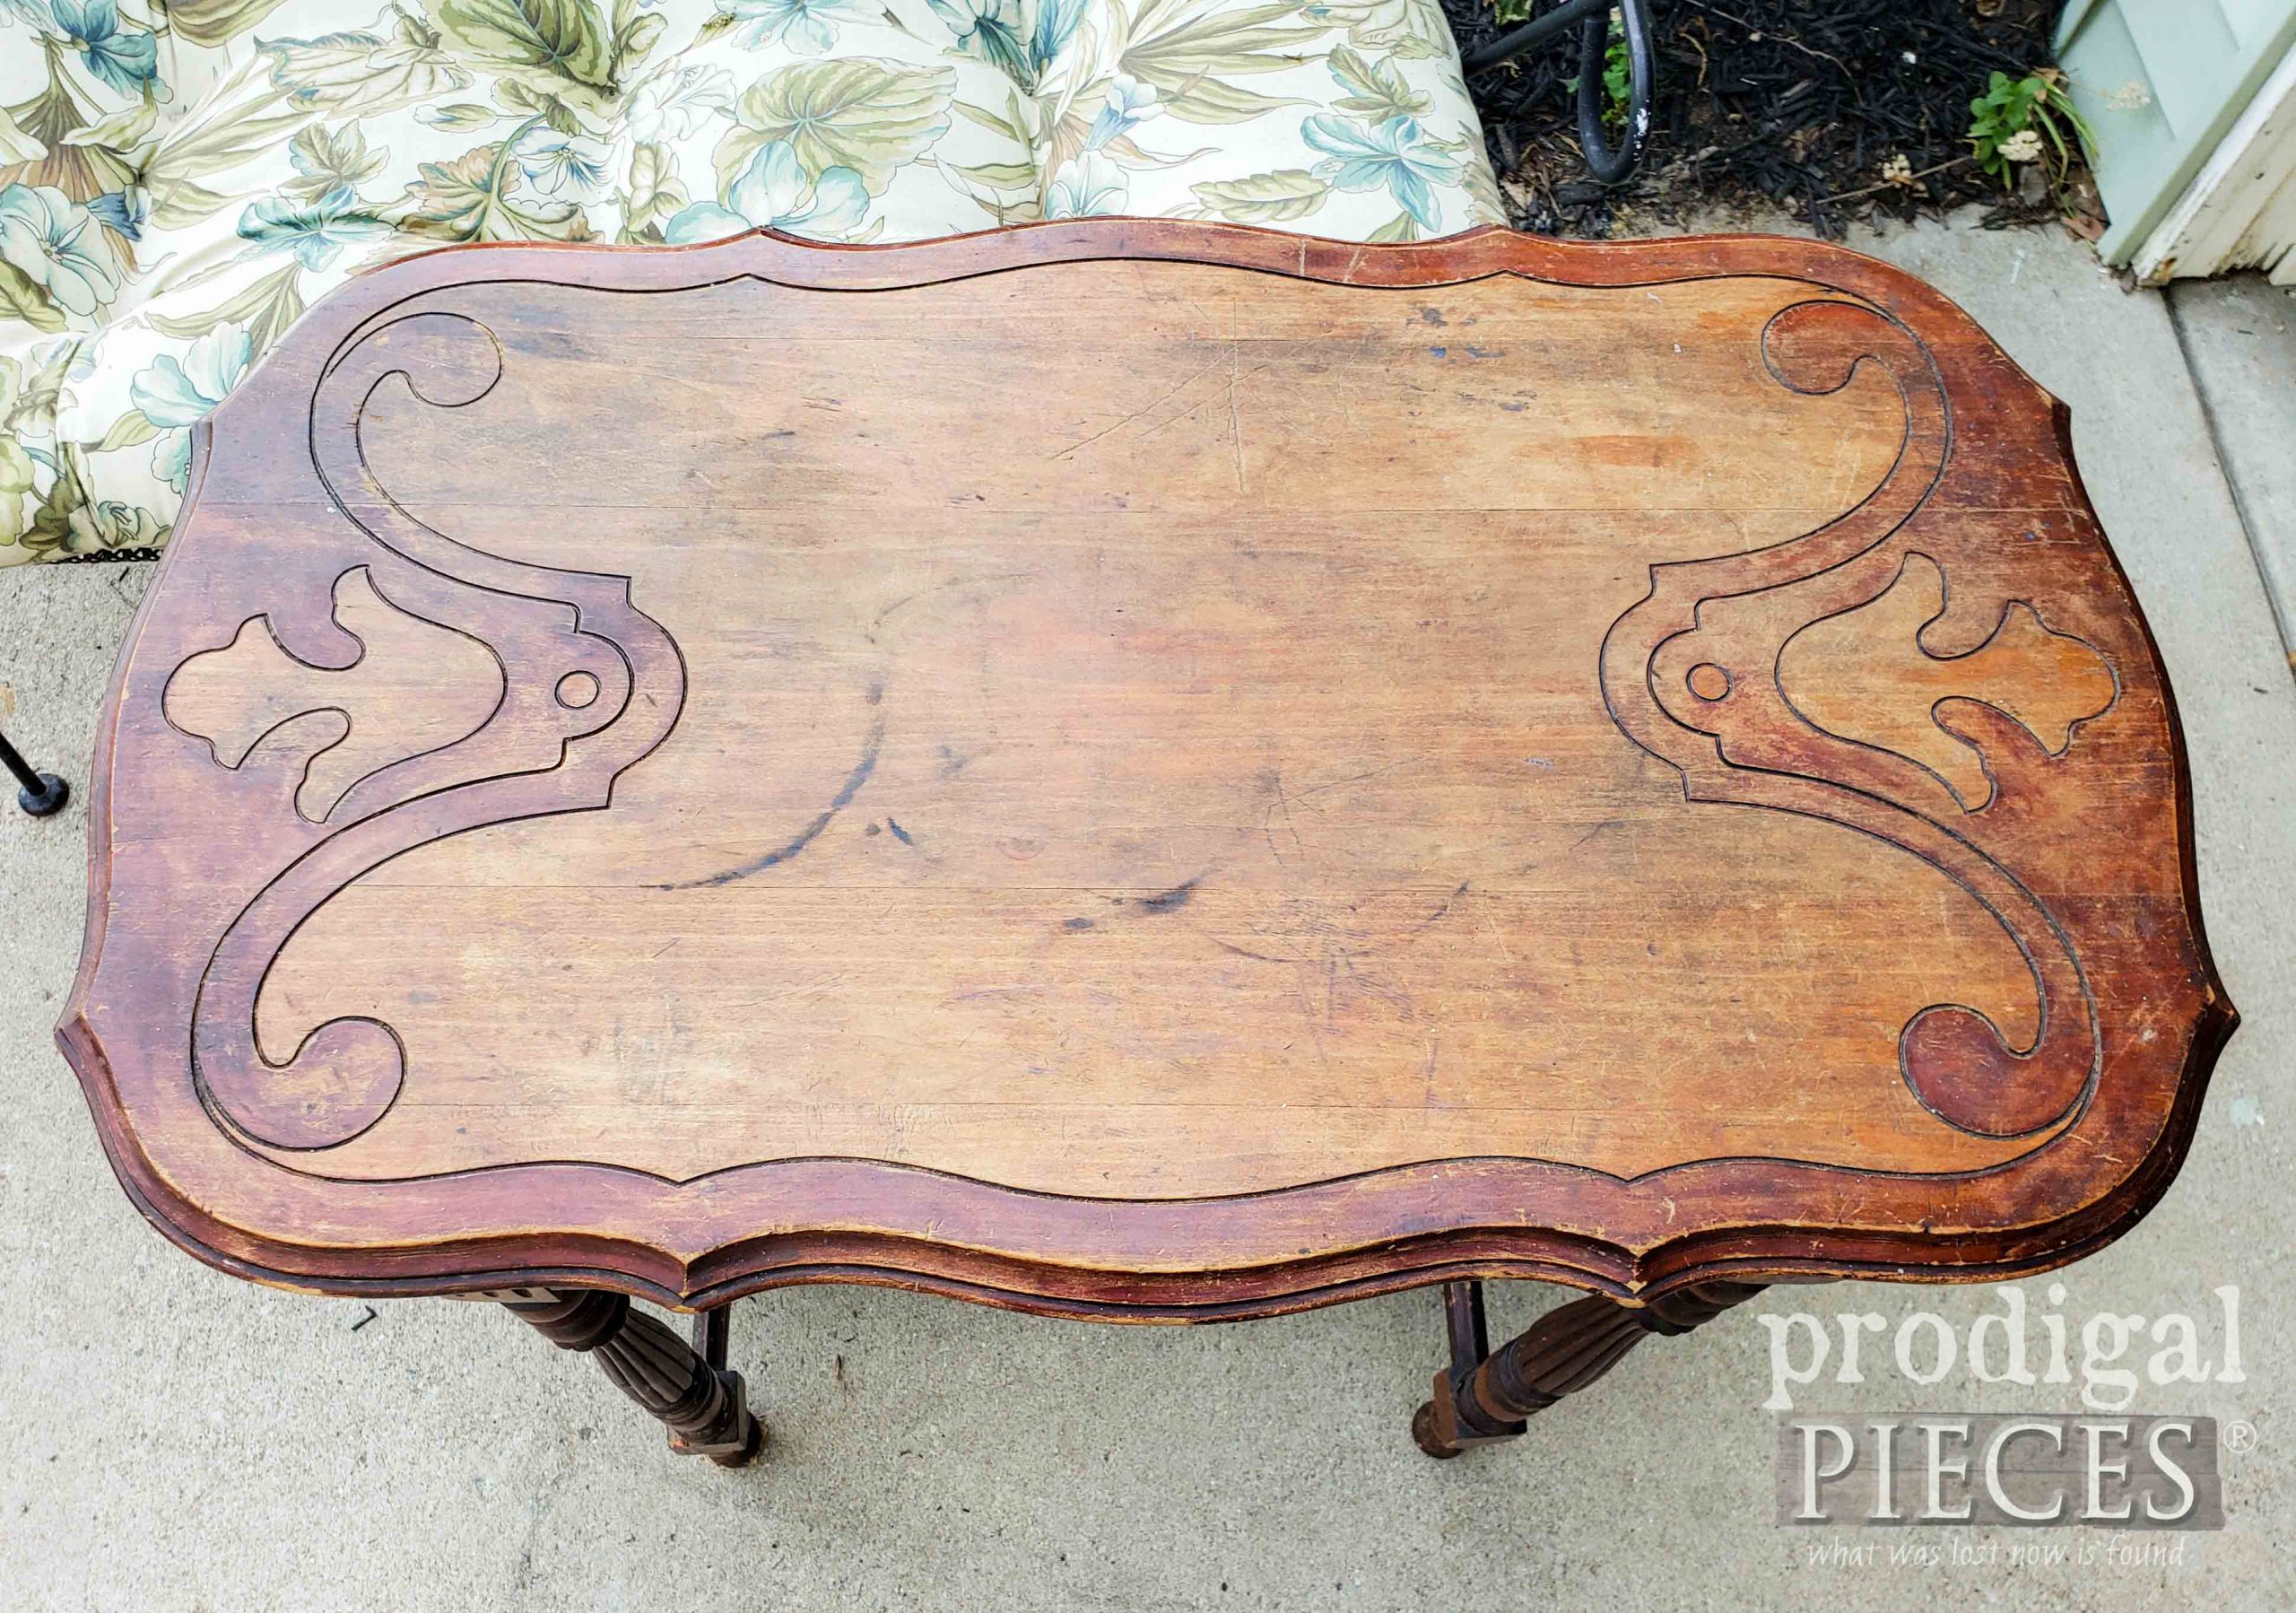 Scrollwork Table Top Before Makeover | prodigalpieces.com